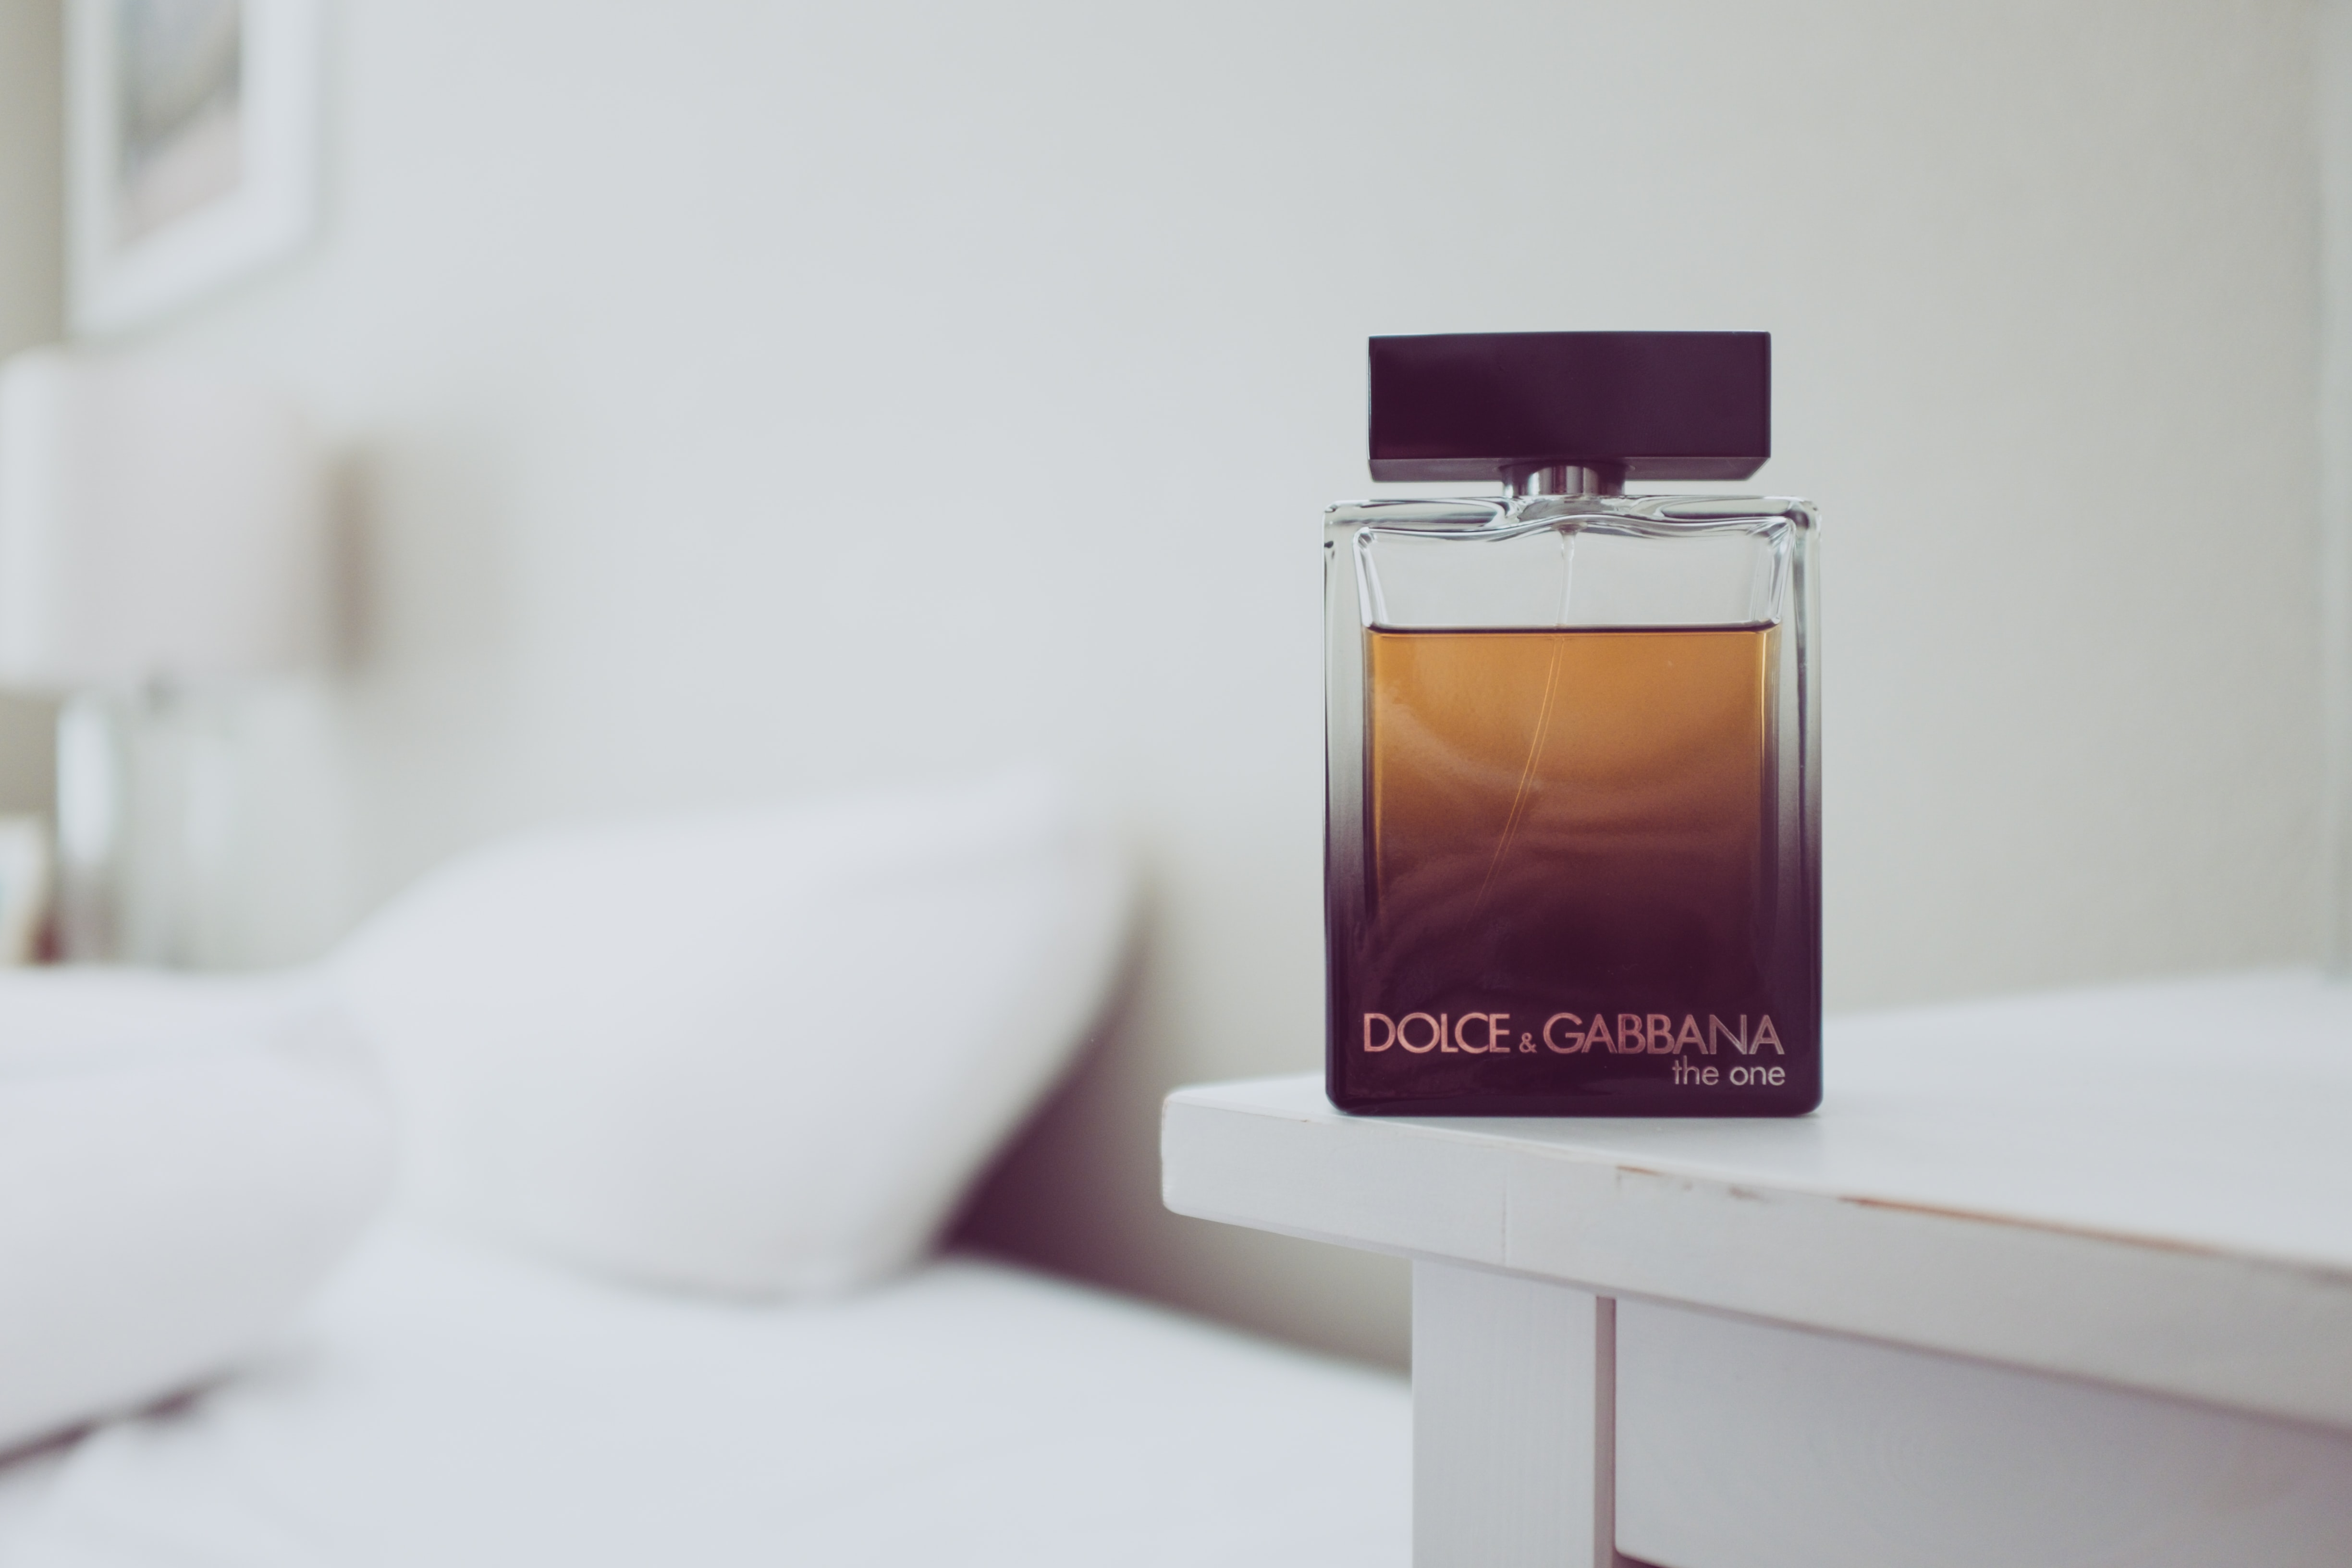 Dolce & Gabbana The One fragrance bottle on white wooden table